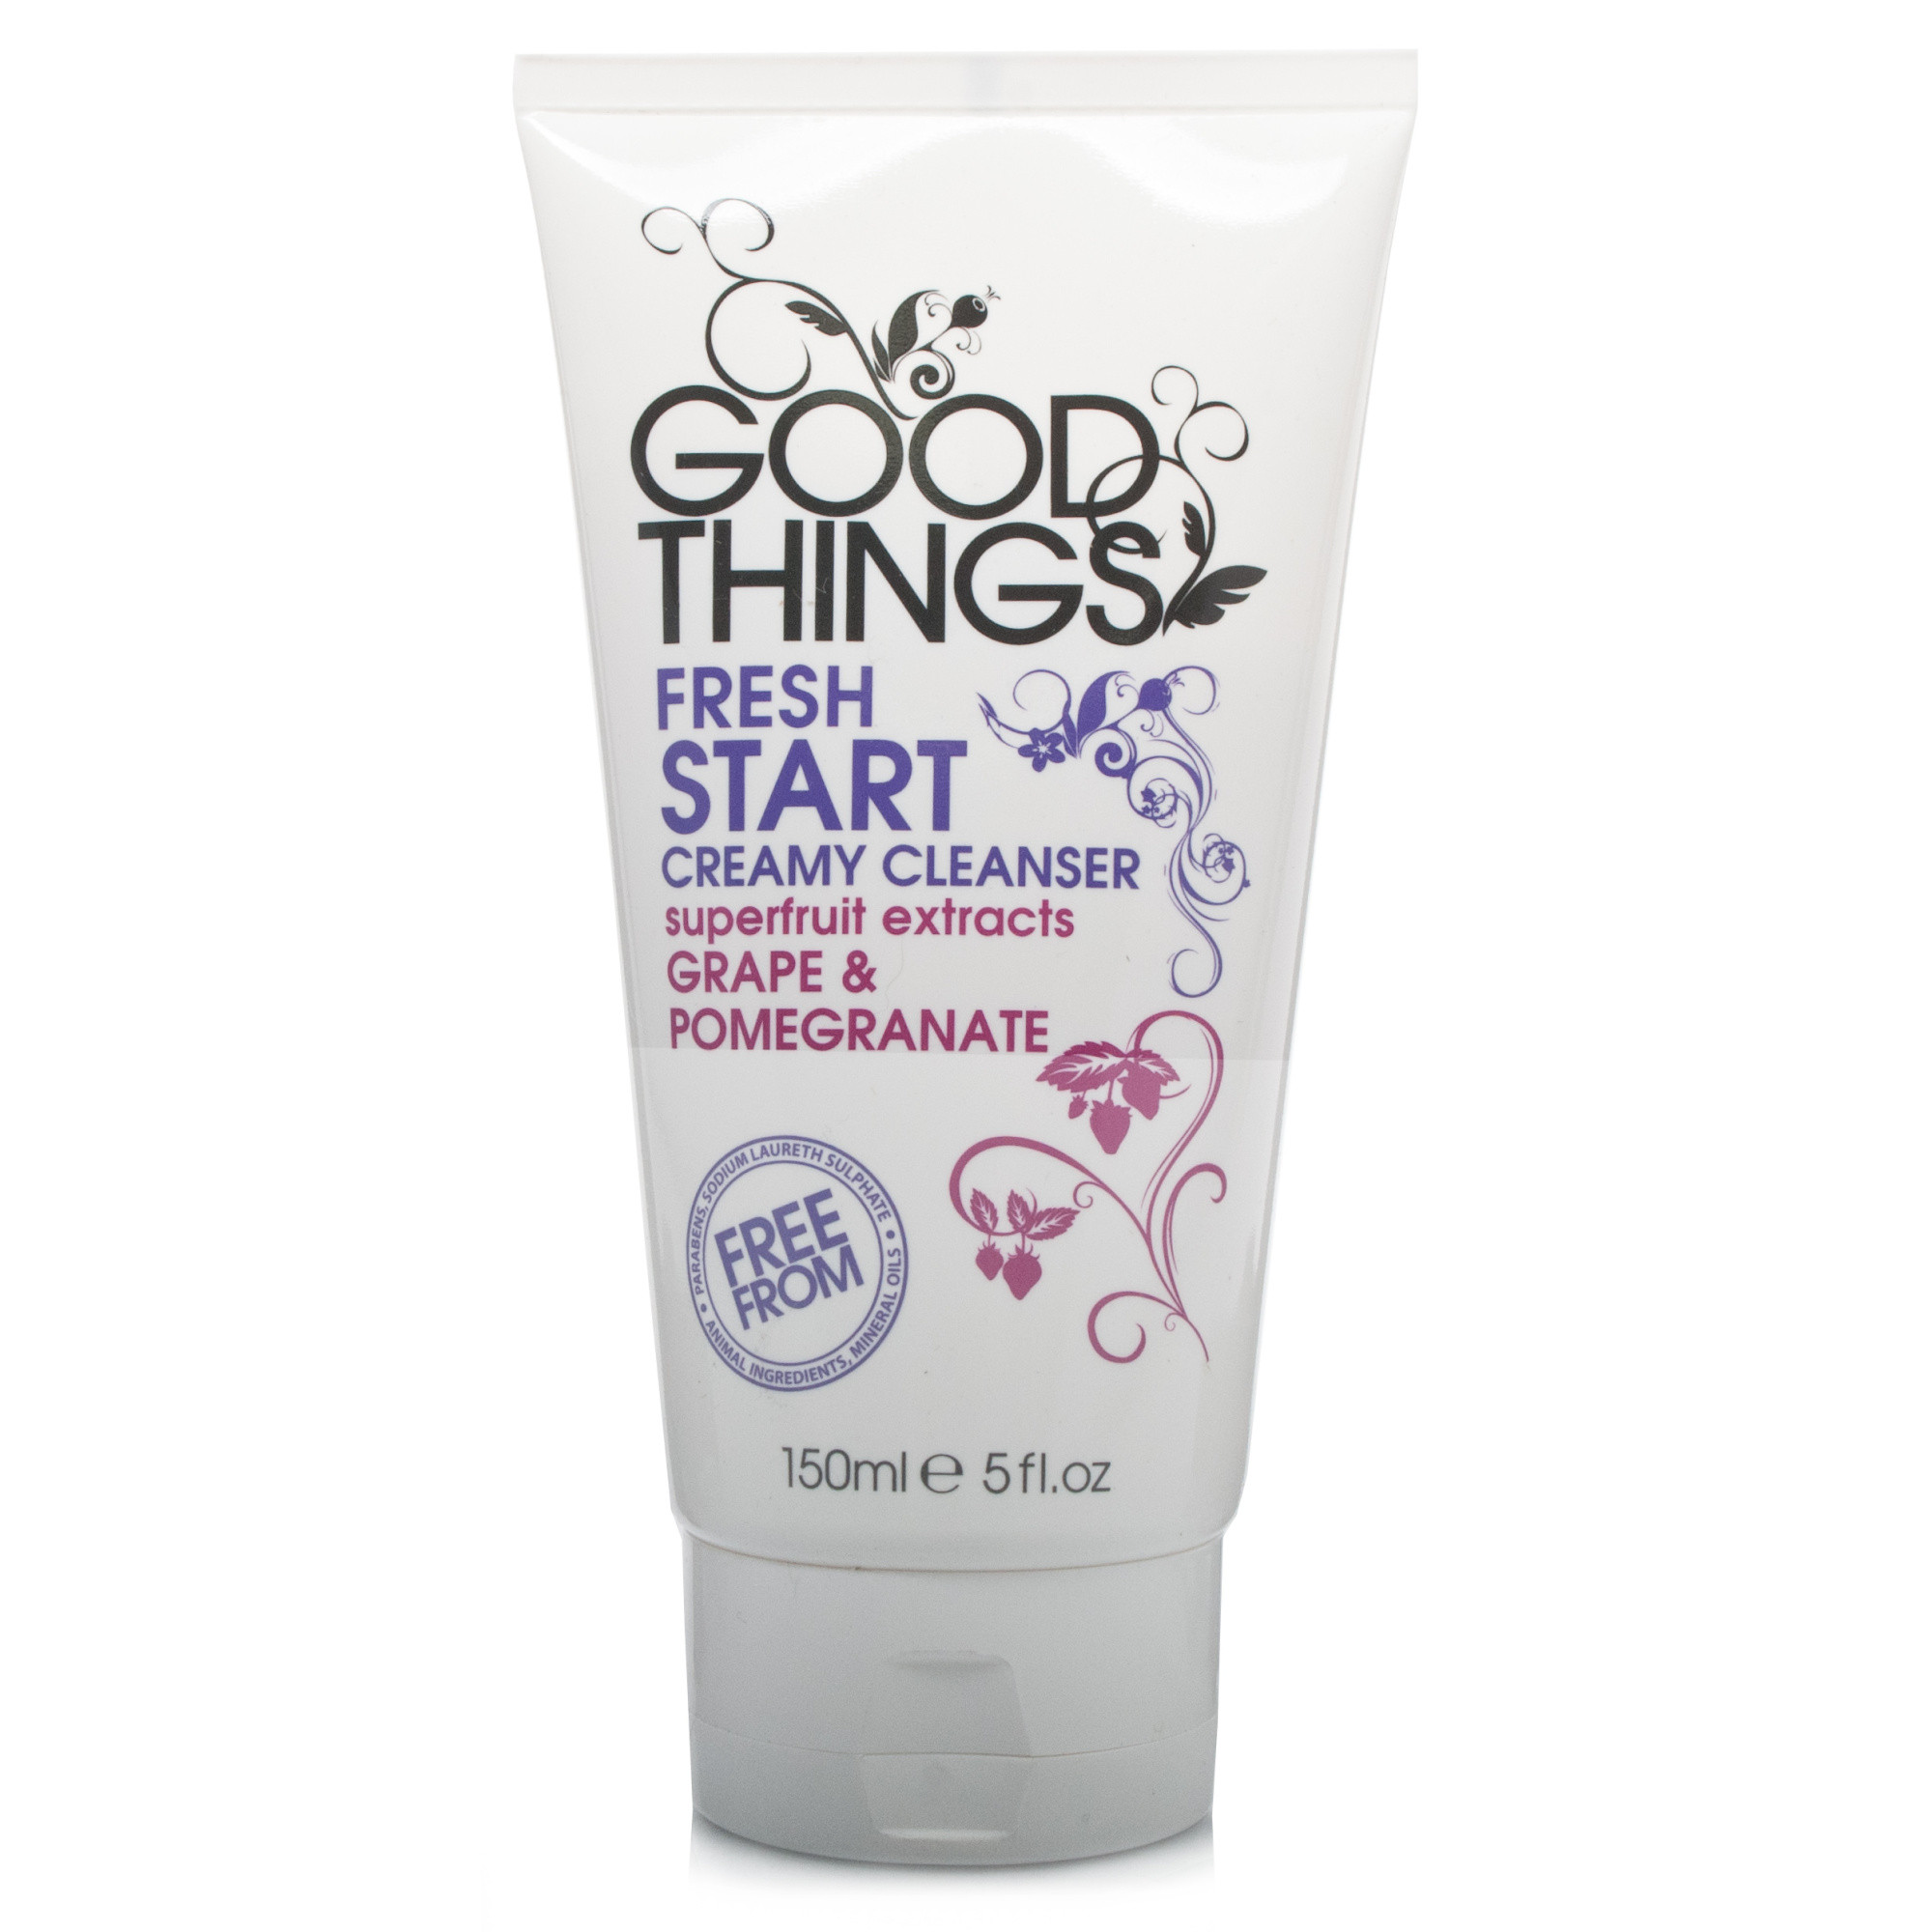 Good Things Fresh Start Creamy Cleanser